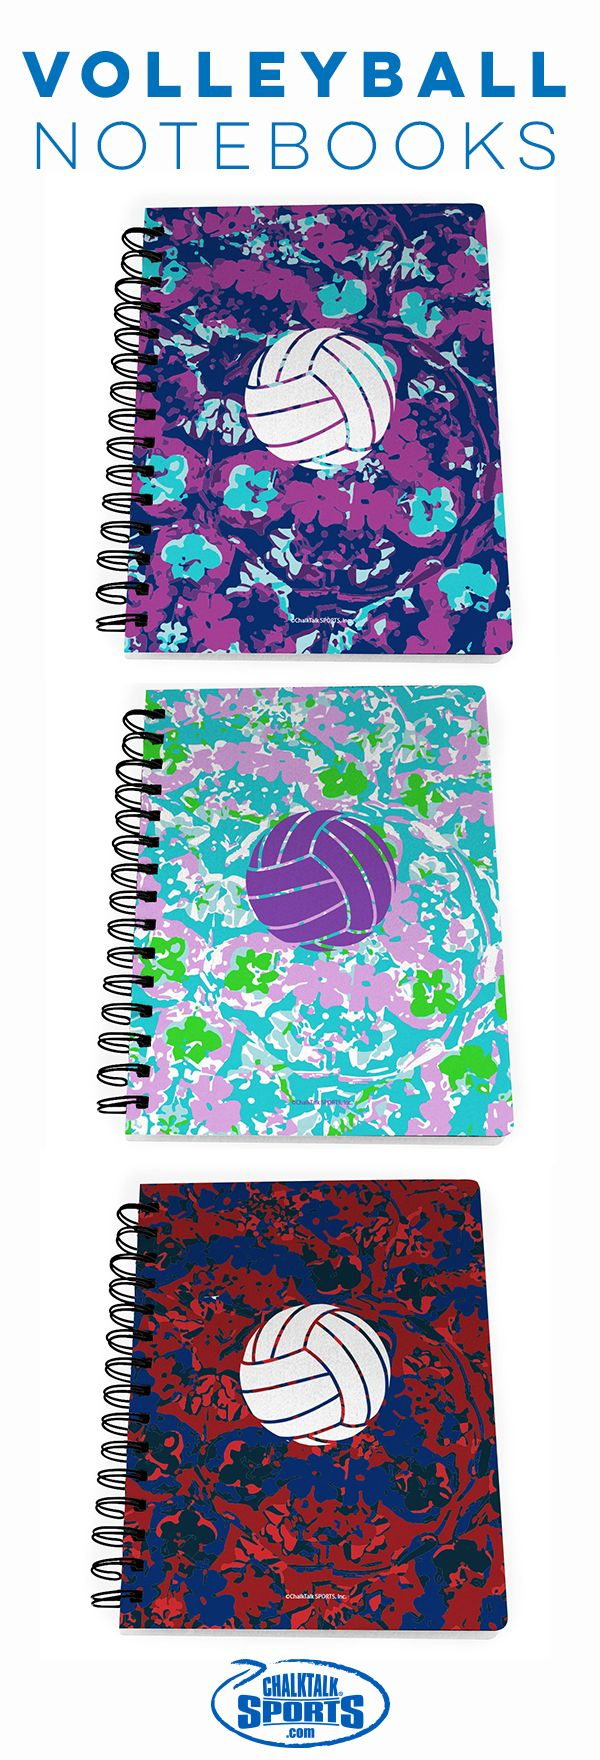 Our #volleyball notebooks are perfect for note taking, doodling, wish lists and more! Many styles can even be personalized with your name and number!